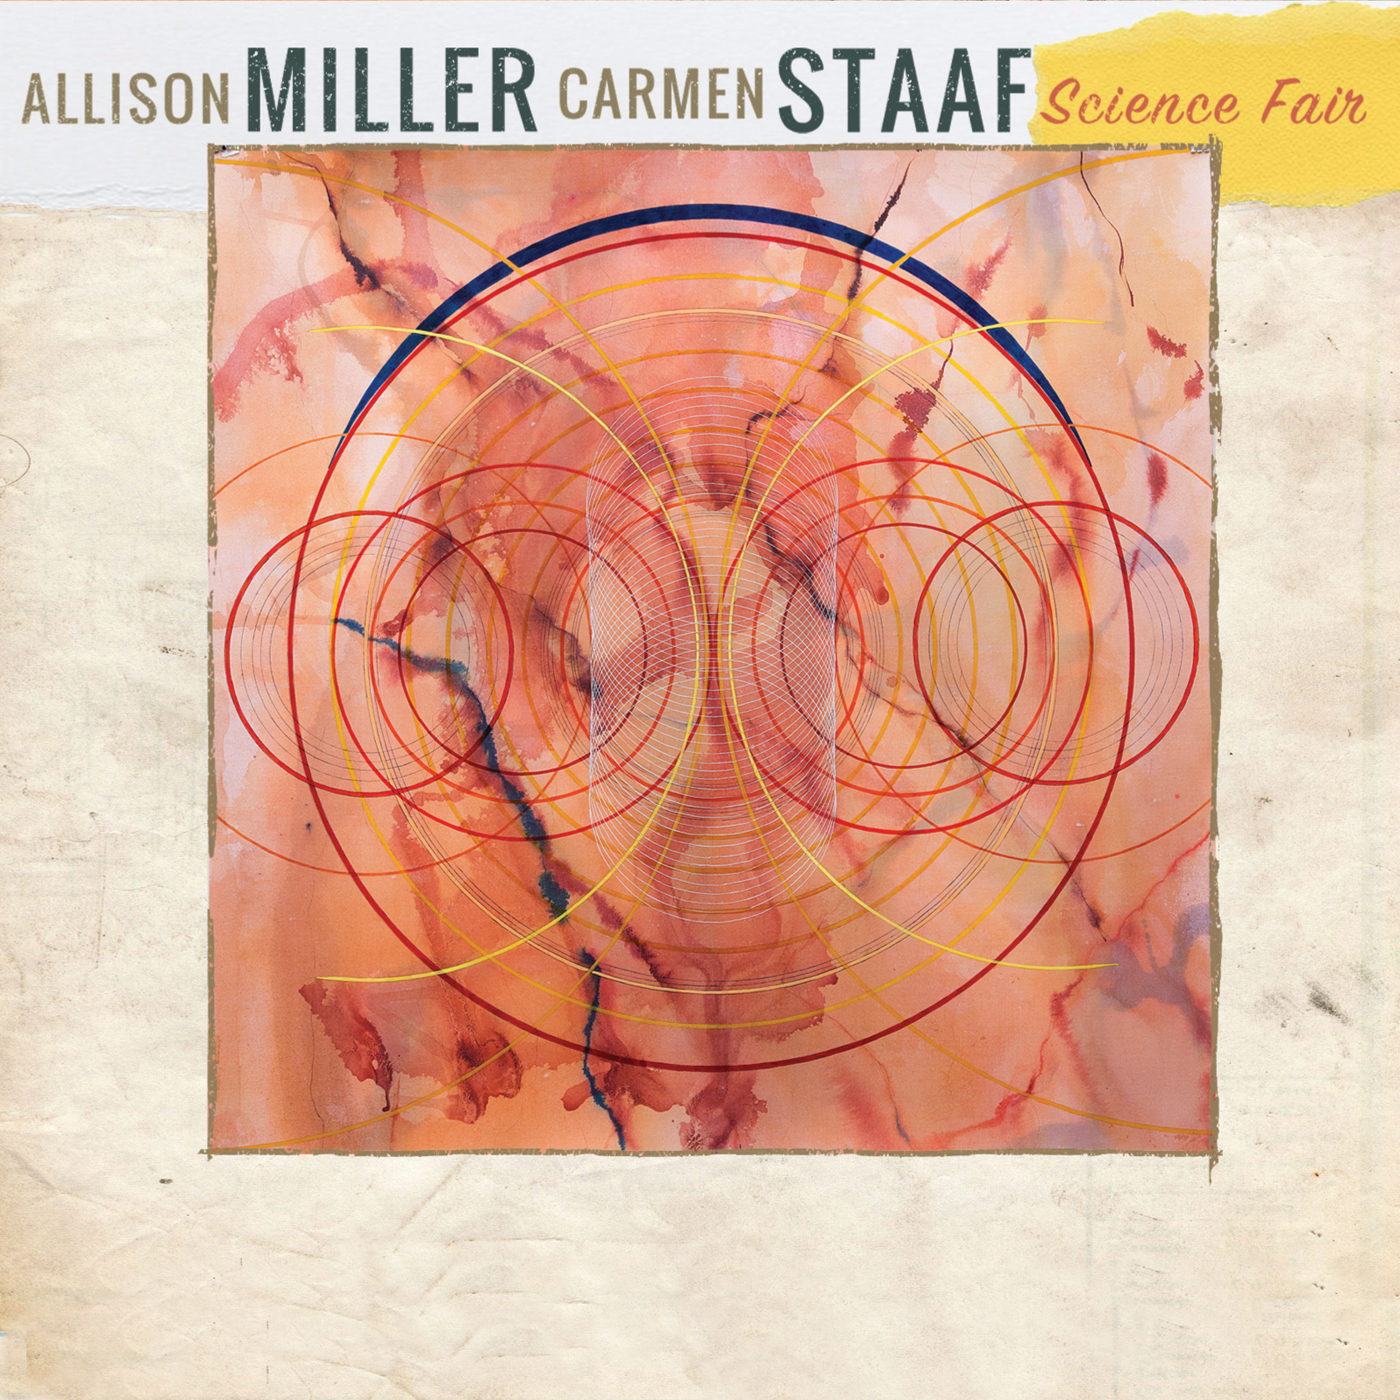 Science Fair  by Allison  Miller cover